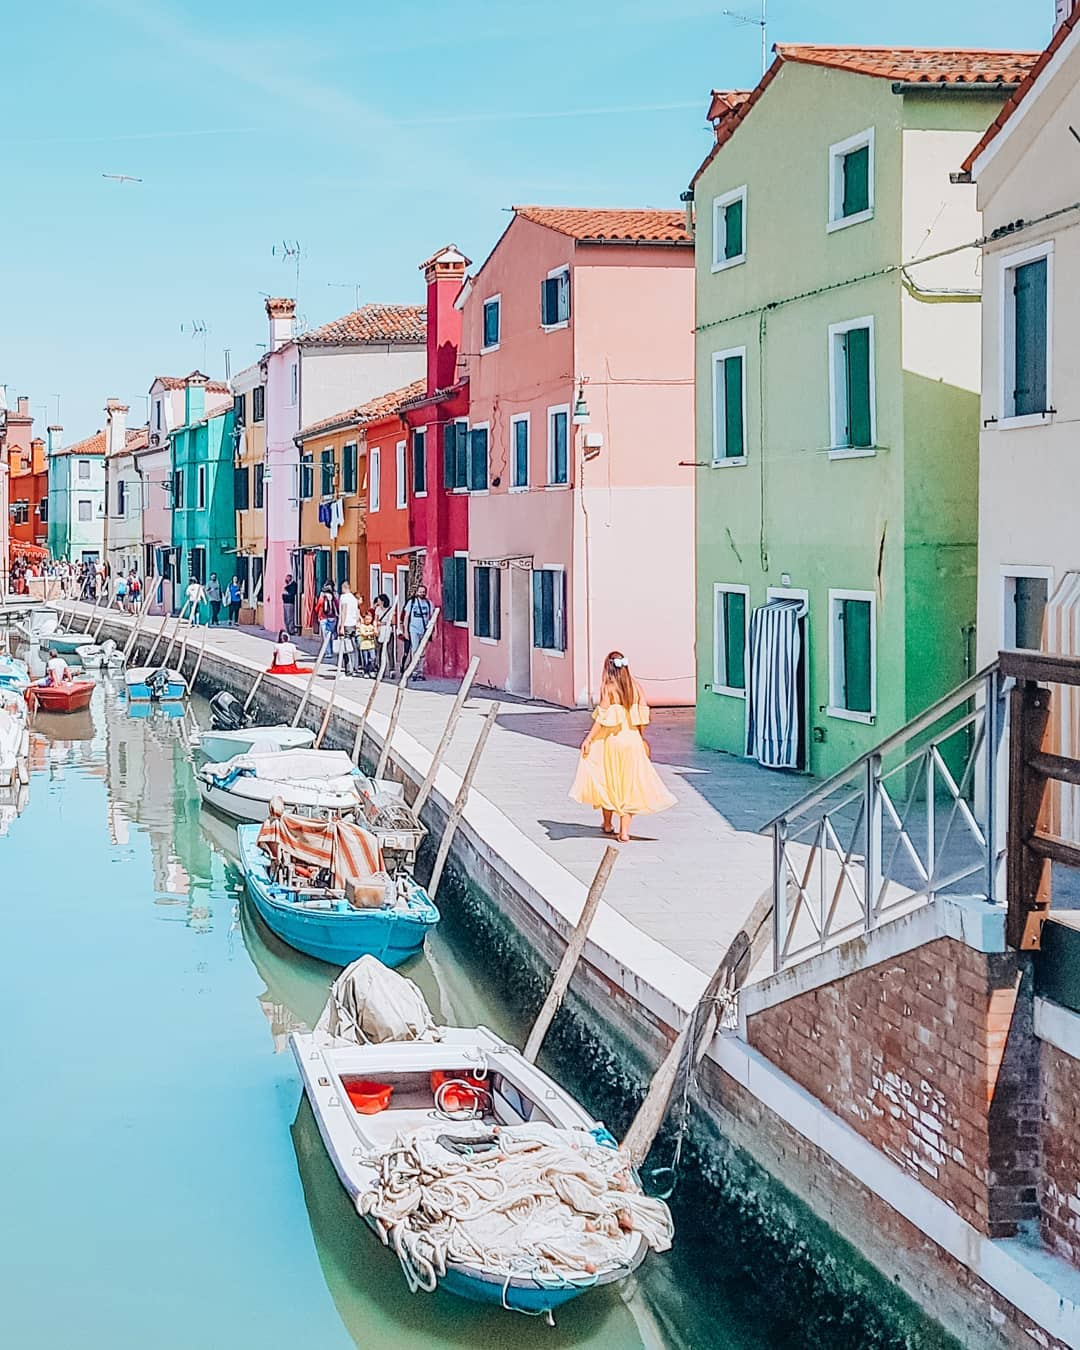 Most Instagrammable Places In Venice - Burano